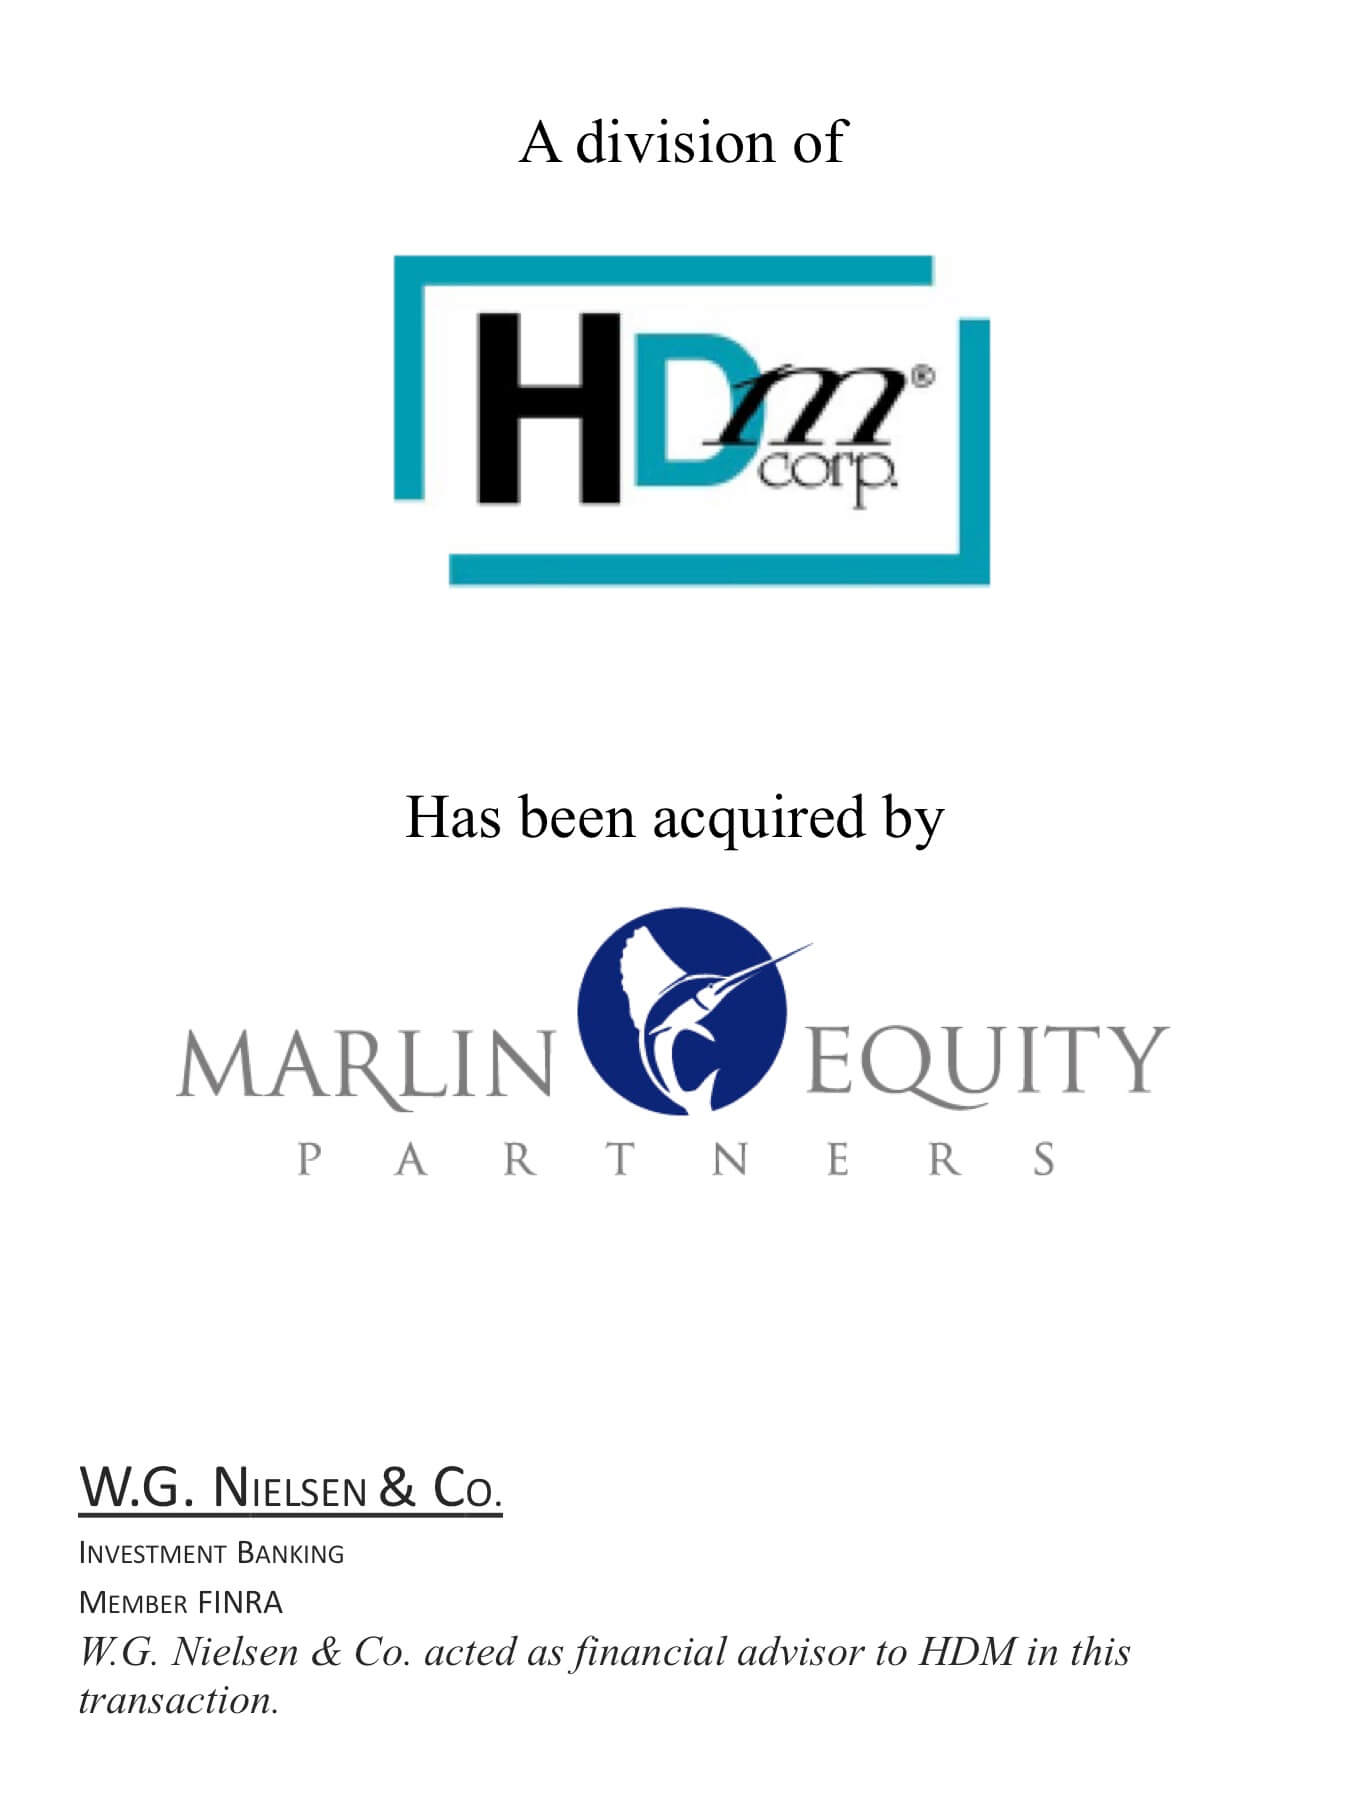 hdm investment banking transaction